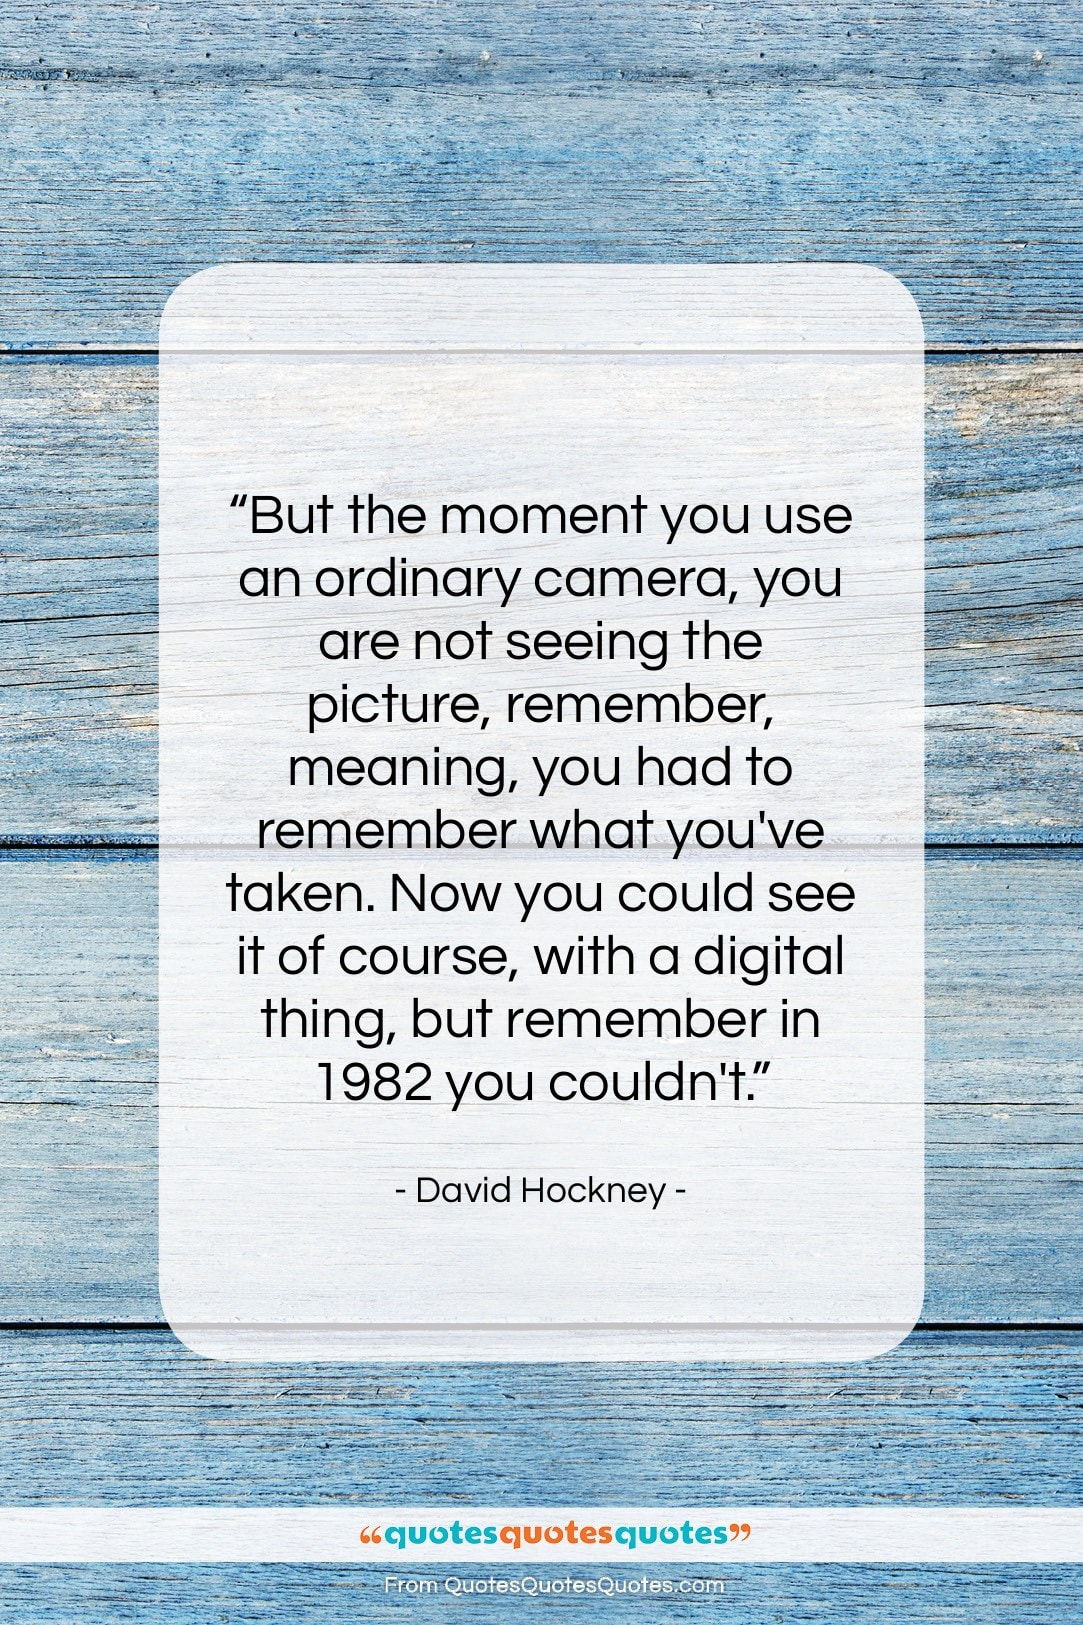 """David Hockney quote: """"But the moment you use an ordinary…""""- at QuotesQuotesQuotes.com"""